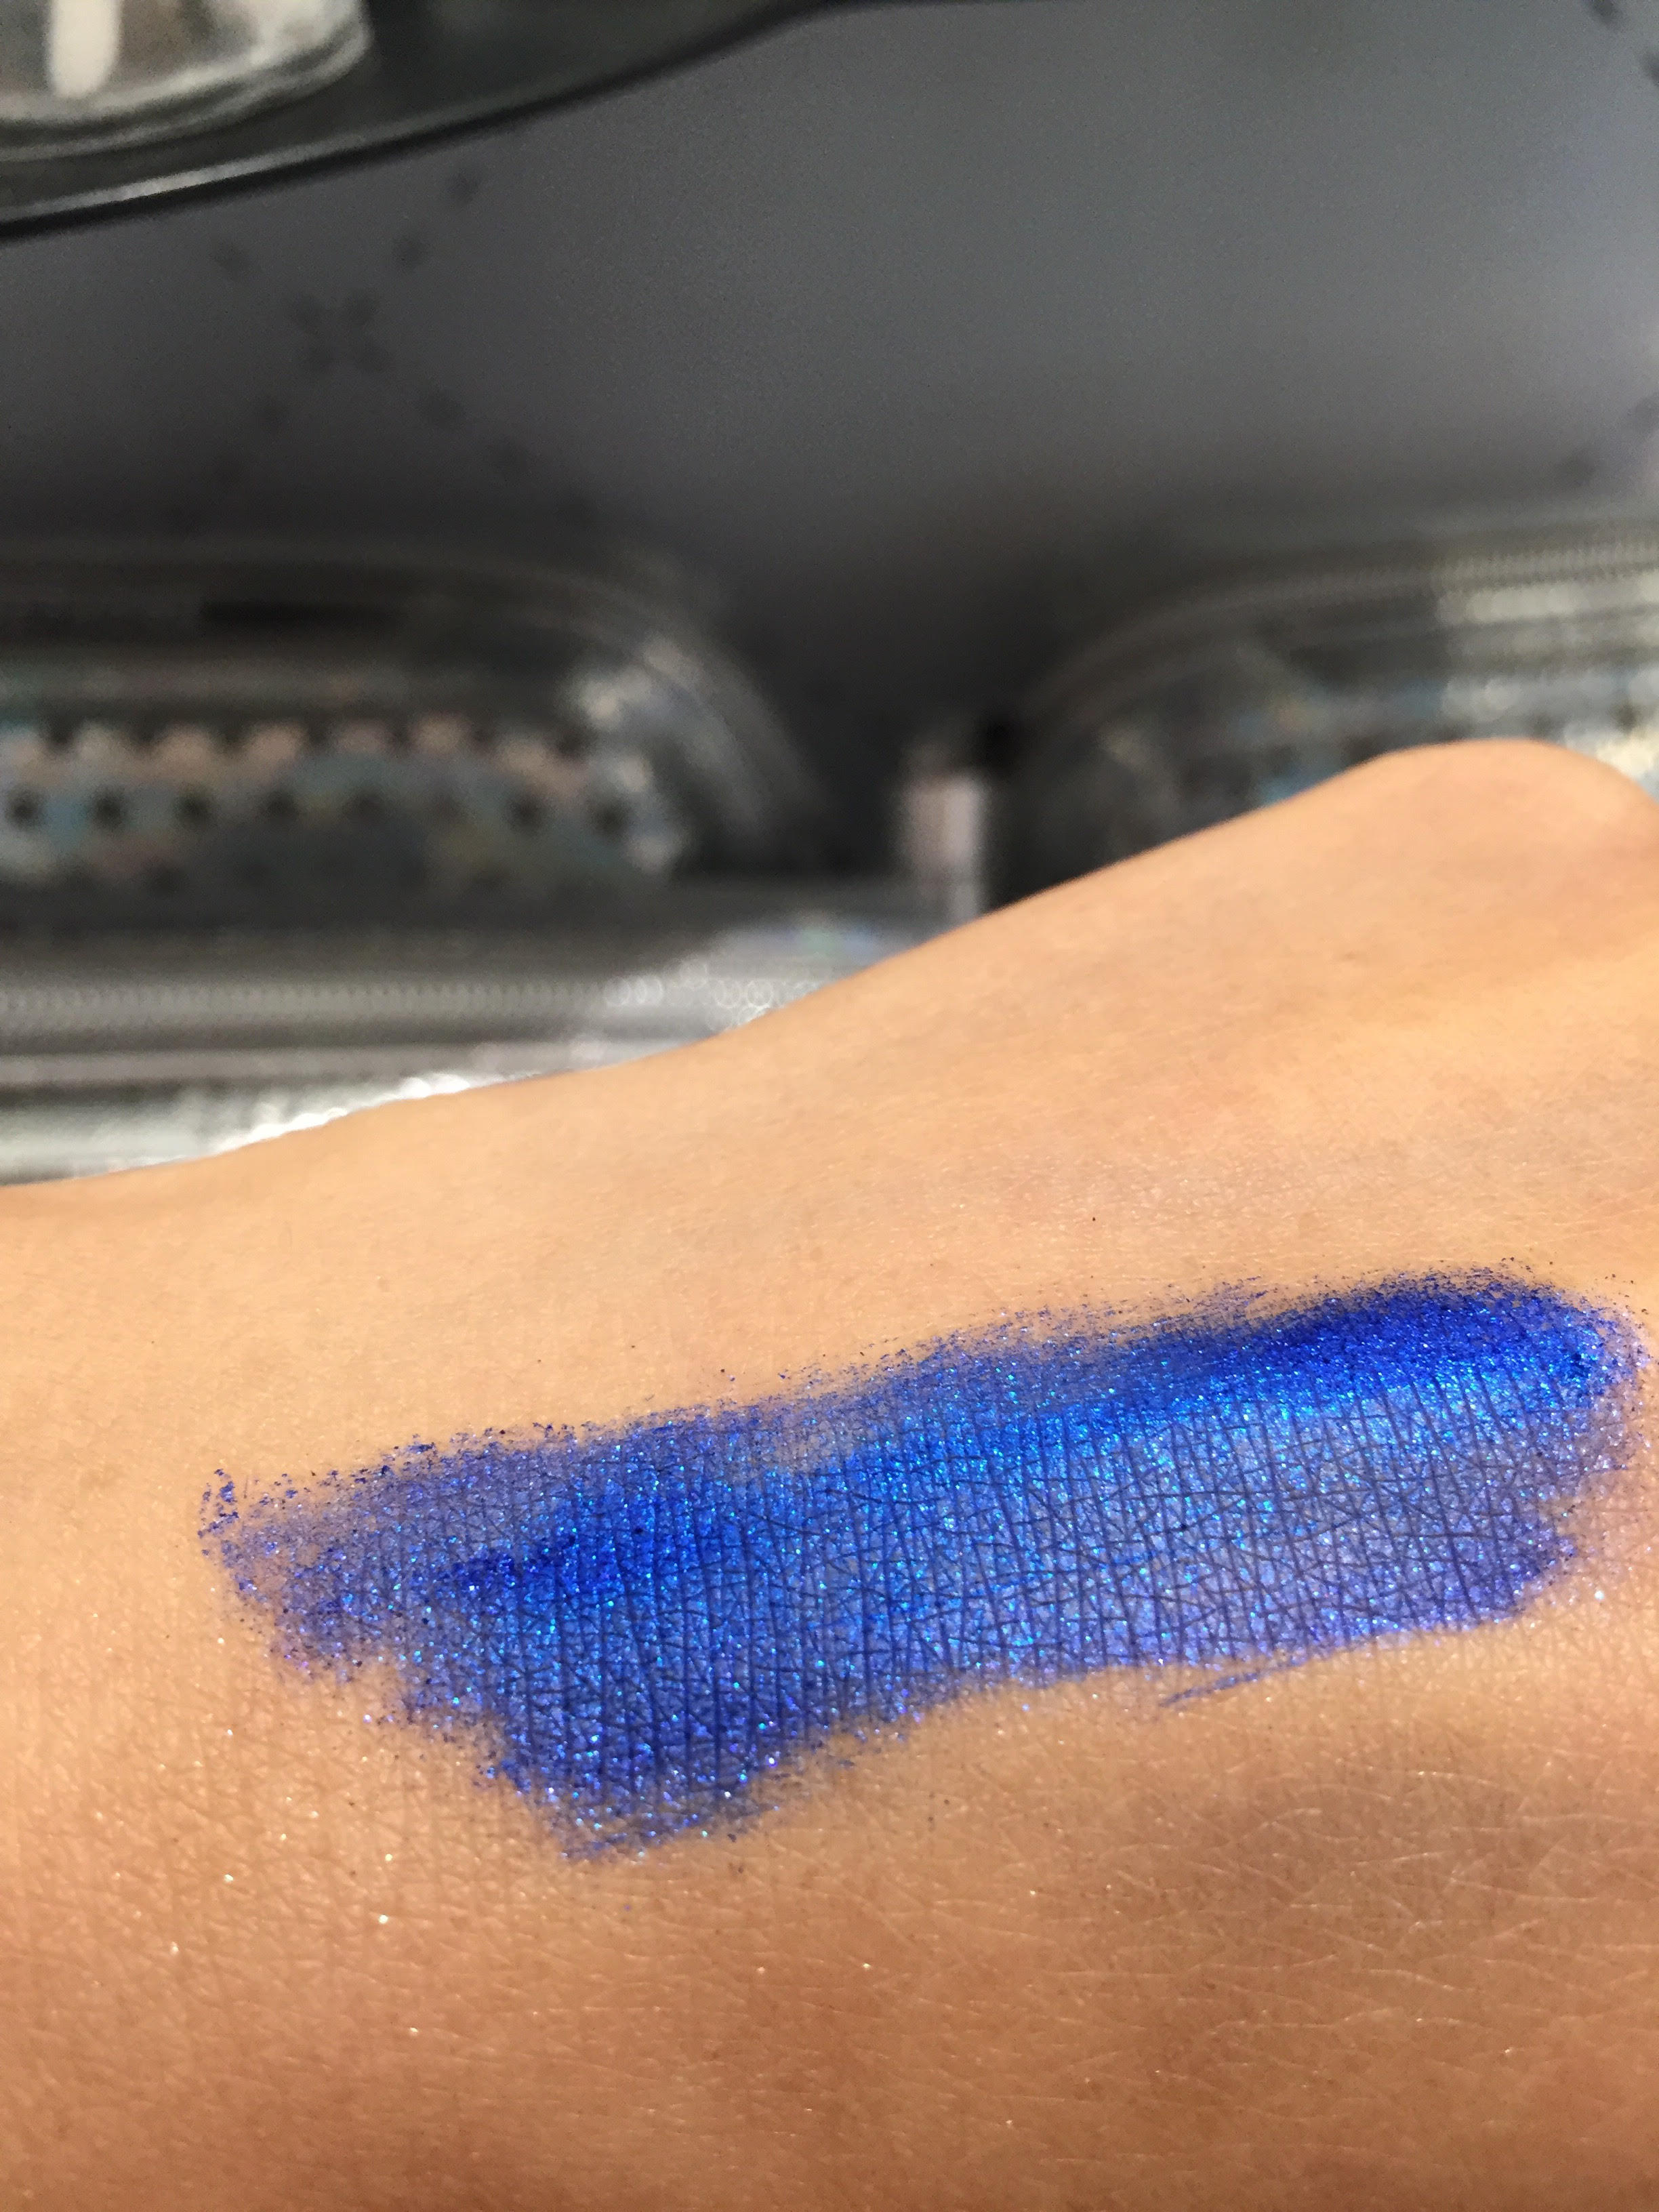 MAKE UP FOR EVER Star Lit Powder Ultramarine